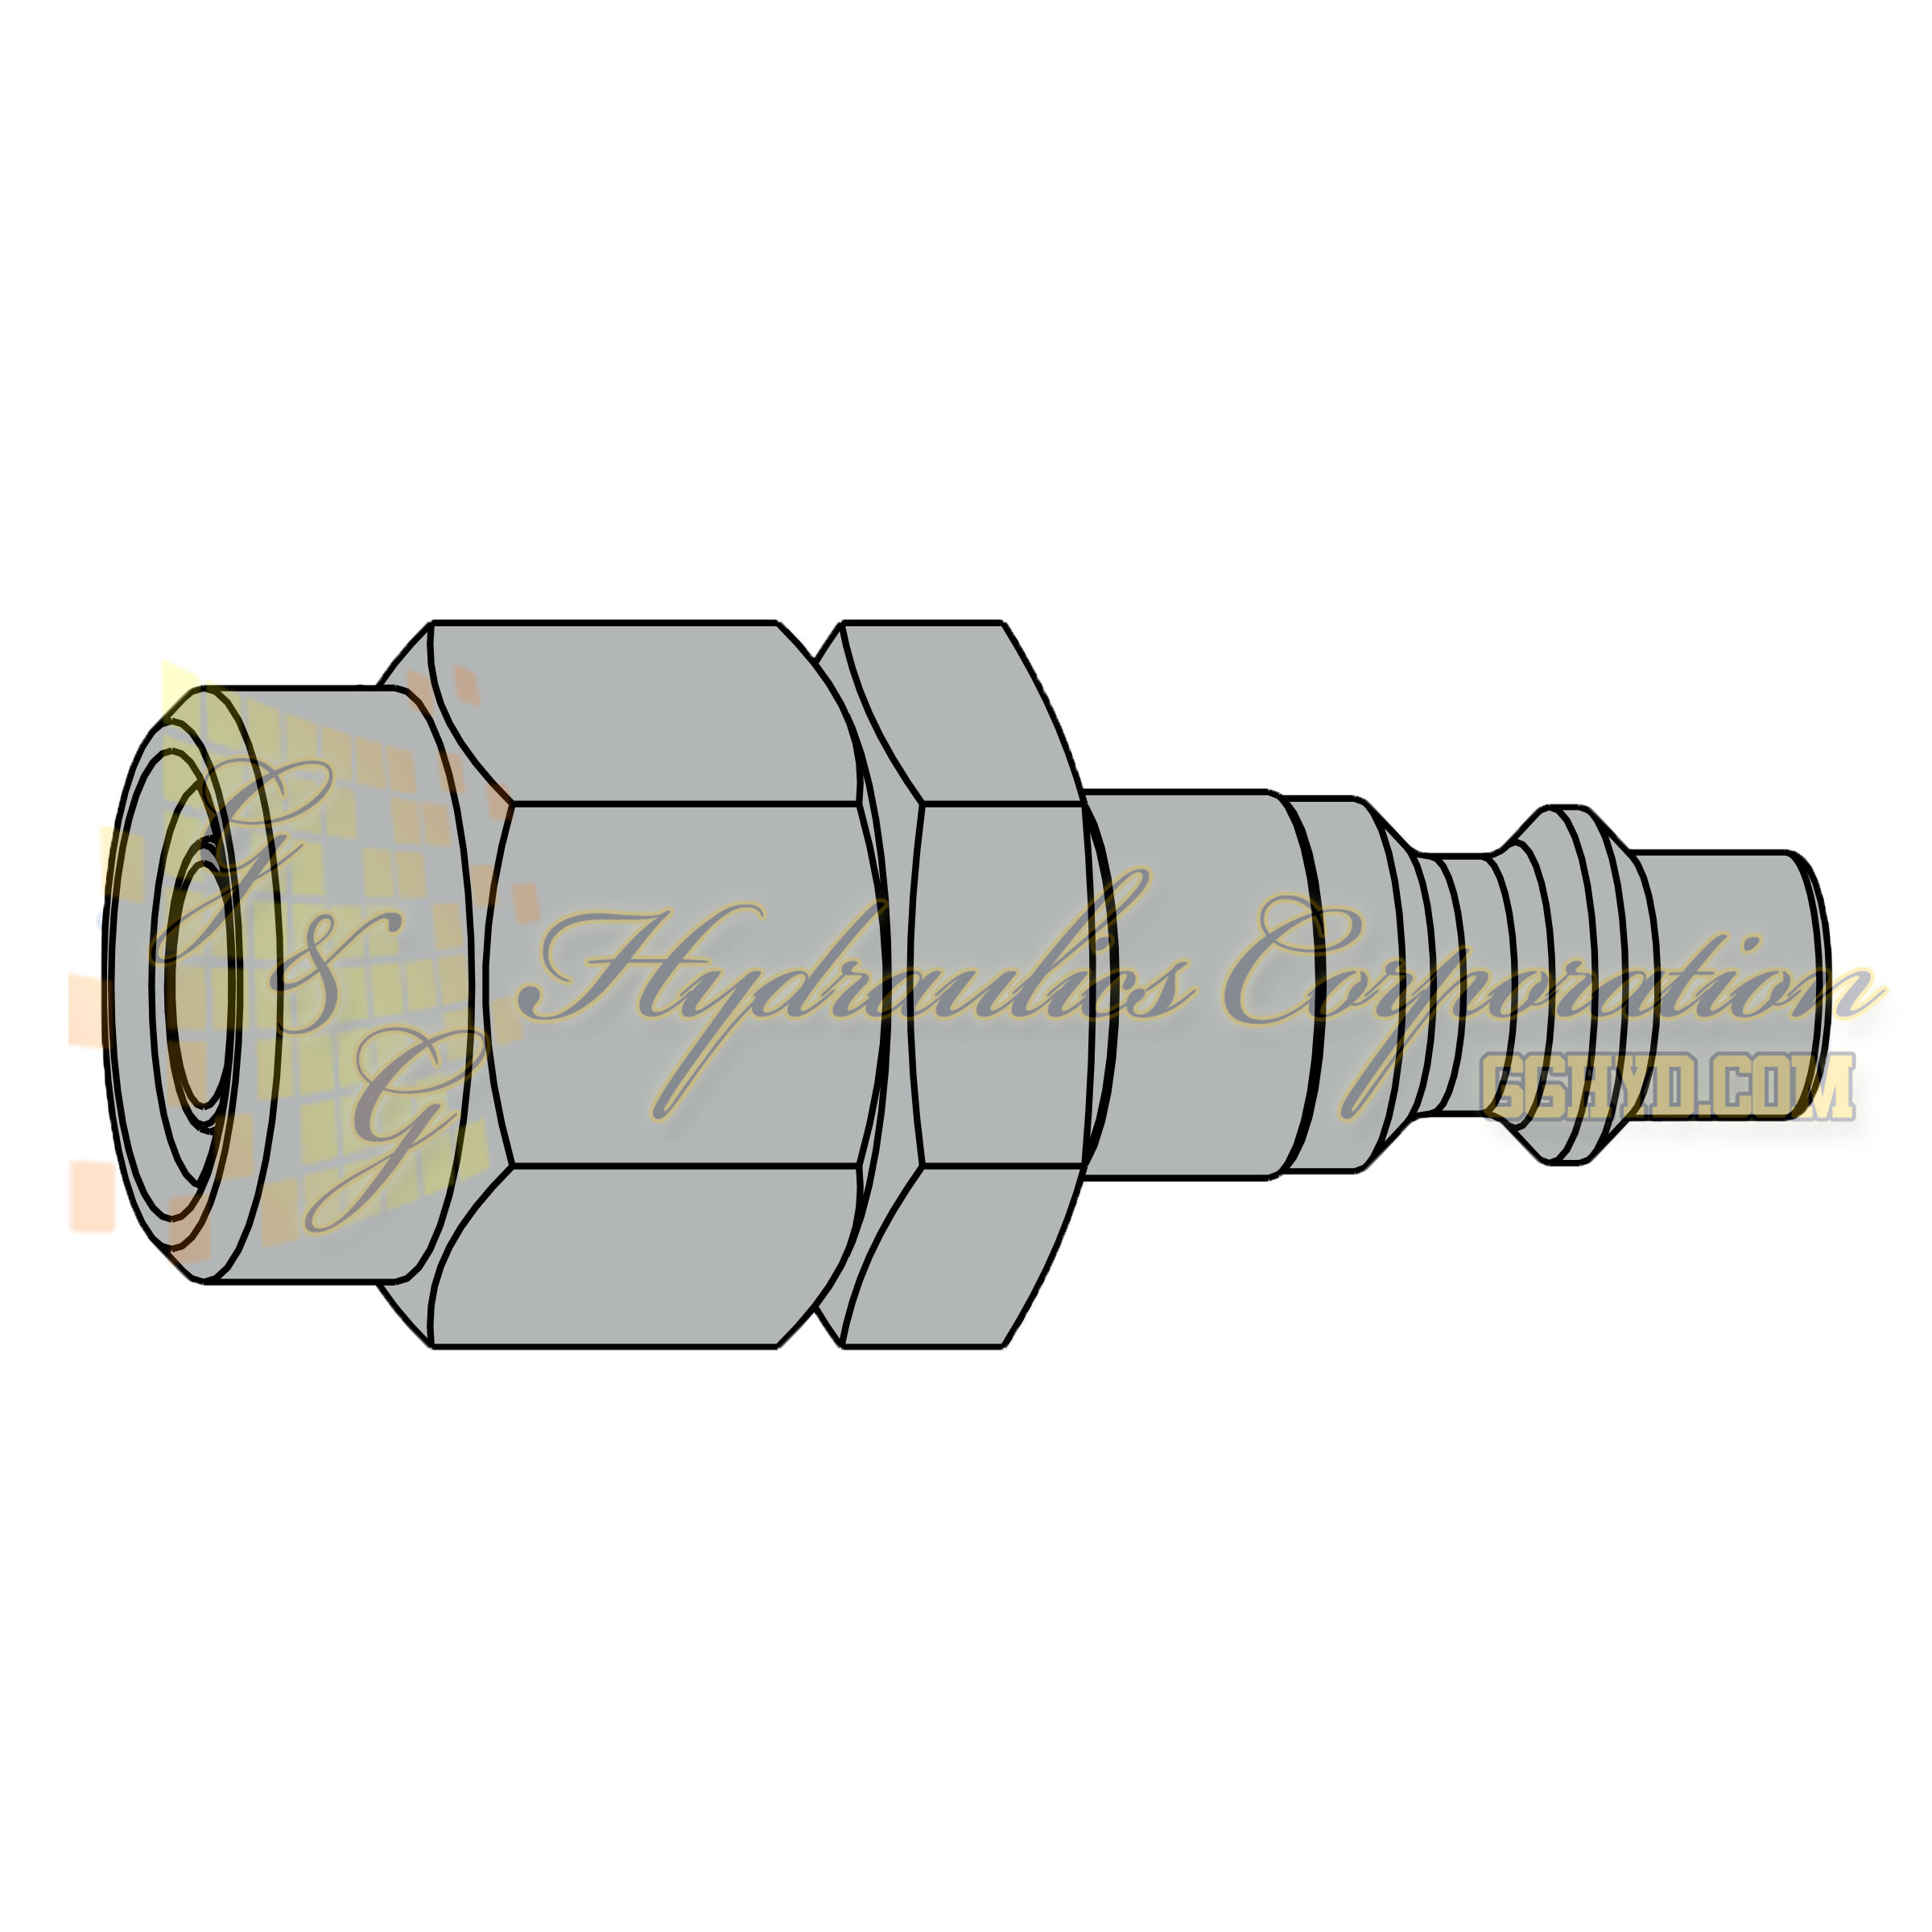 10-310-5066 CEJN Quick Disconnect Nipple, 11x16 mm Stream-Line connection, 232 PSI (16 bar)